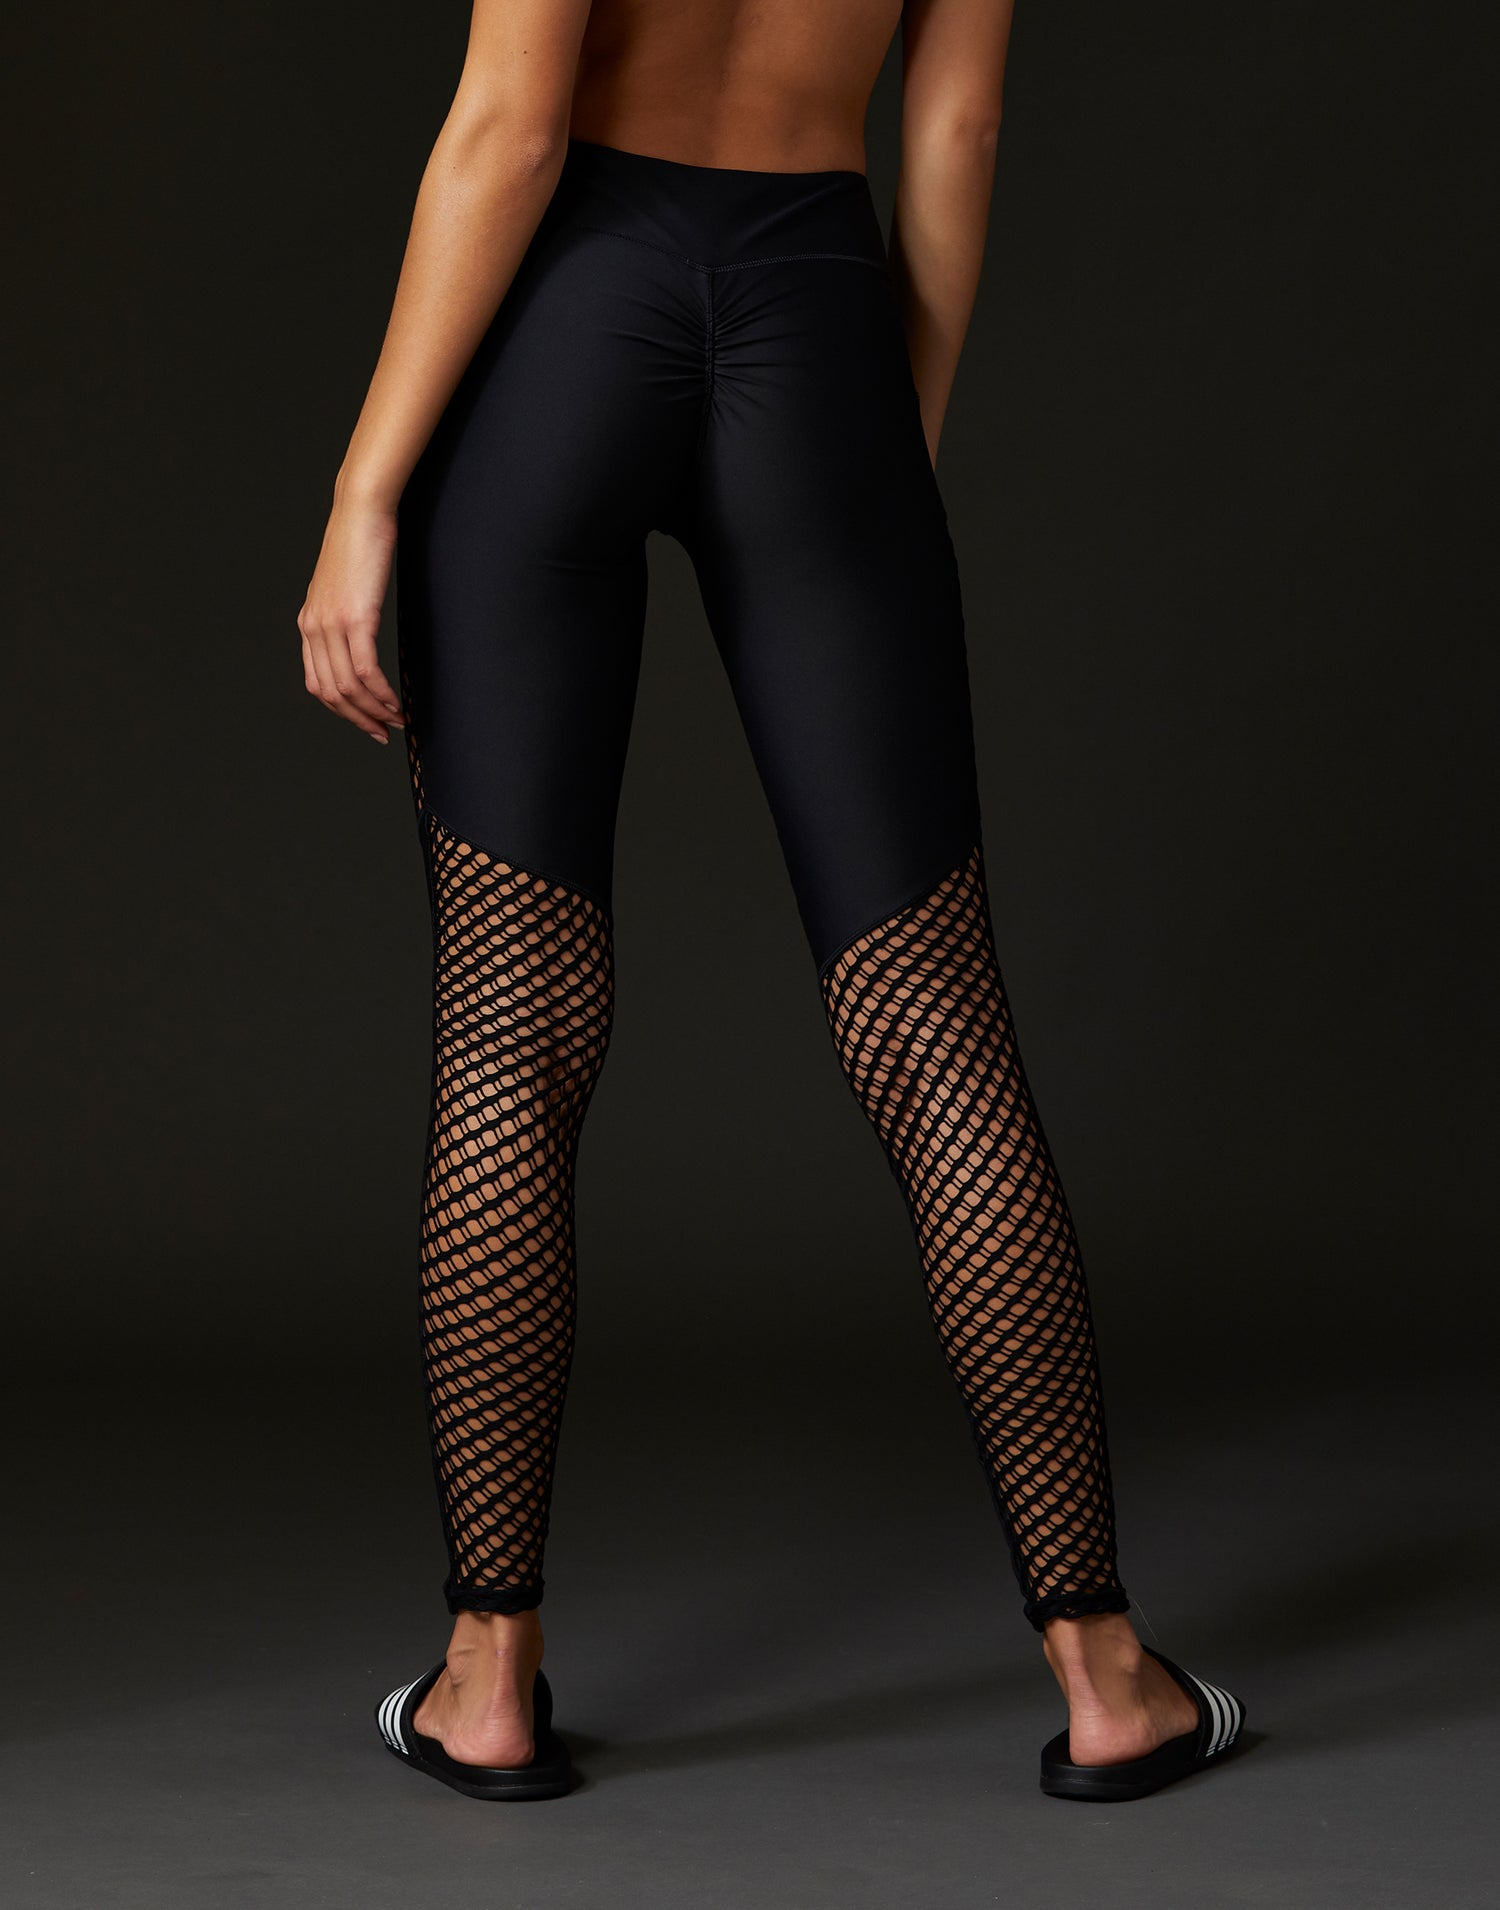 Adult Ryder Legging with Sheer Wide Net Inserts in Black - back view